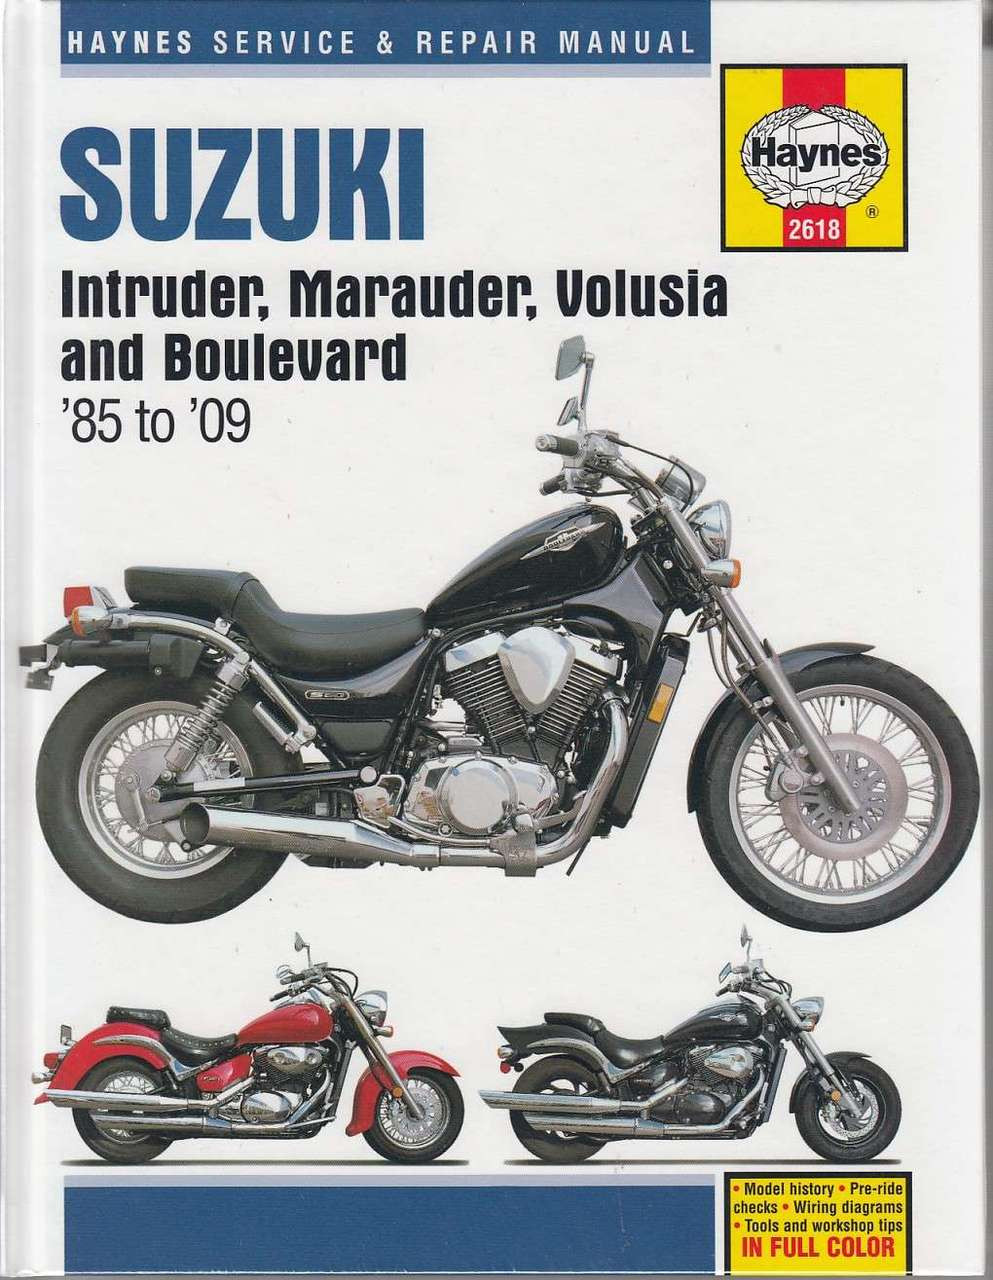 suzuki intruder marauder volusia and boulevard 1985 2009 workshop manual [ 993 x 1280 Pixel ]